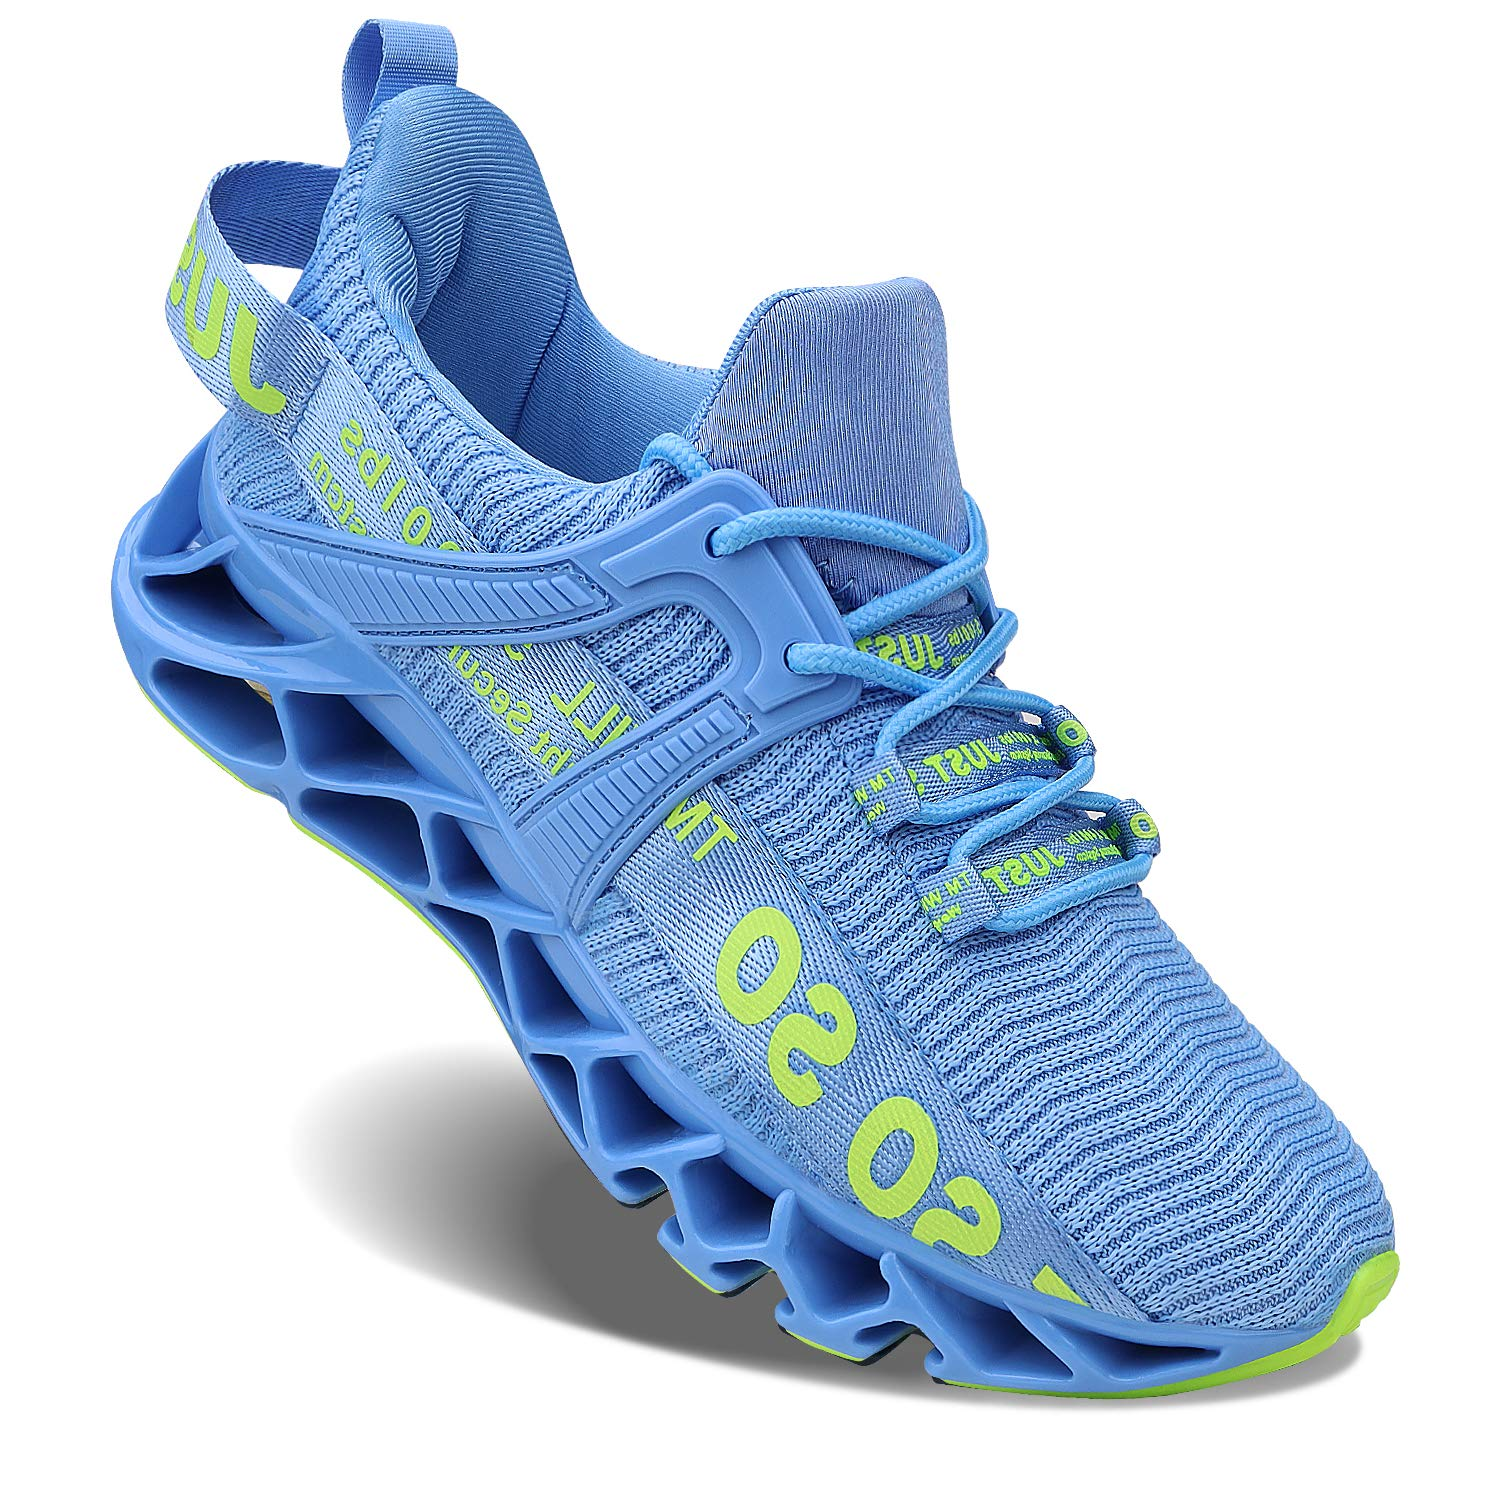 JointlyCreating Womens Non Slip Running Shoes Lightweight Breathable Mesh Sneakers Athletic Gym Sports Walking Shoes